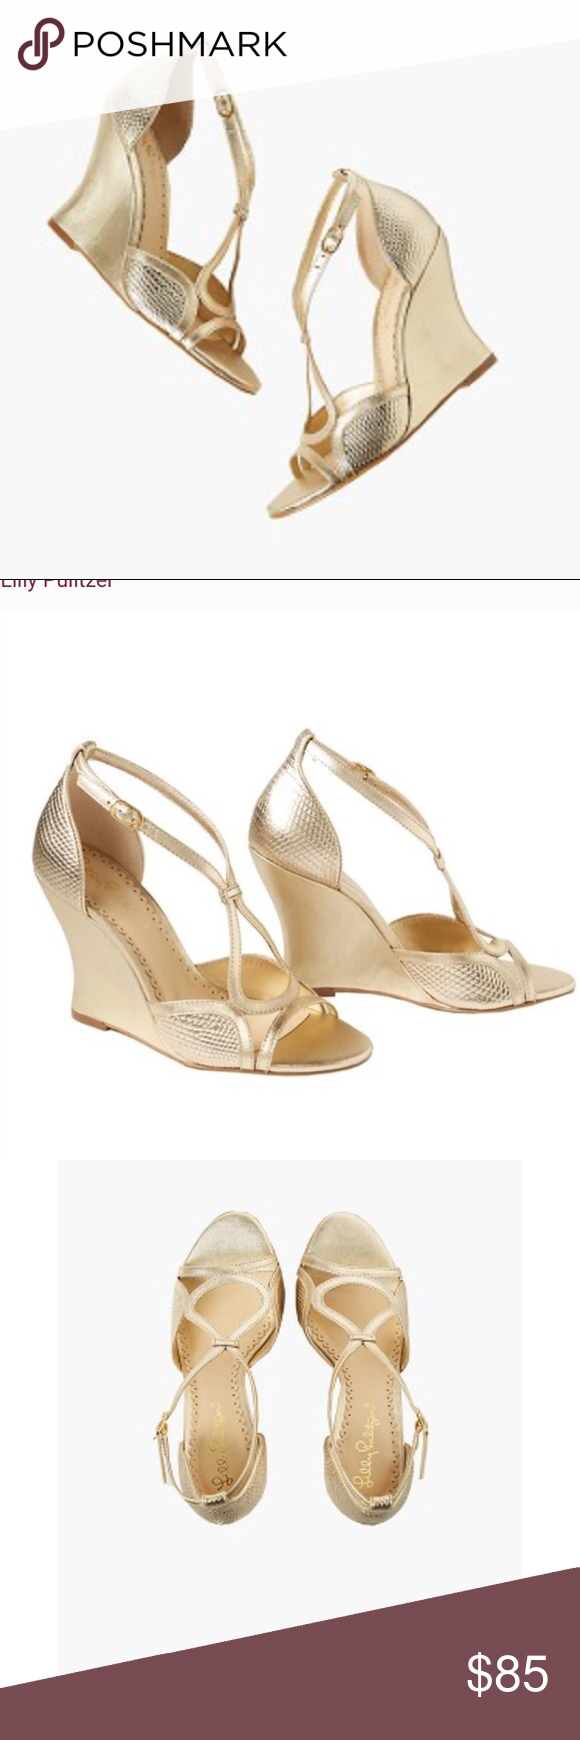 c33234cd6f51 VGUC Lilly Pulitzer Janie Gold Wedges ❤ size 9 Metallic embossed leather  acged wedge